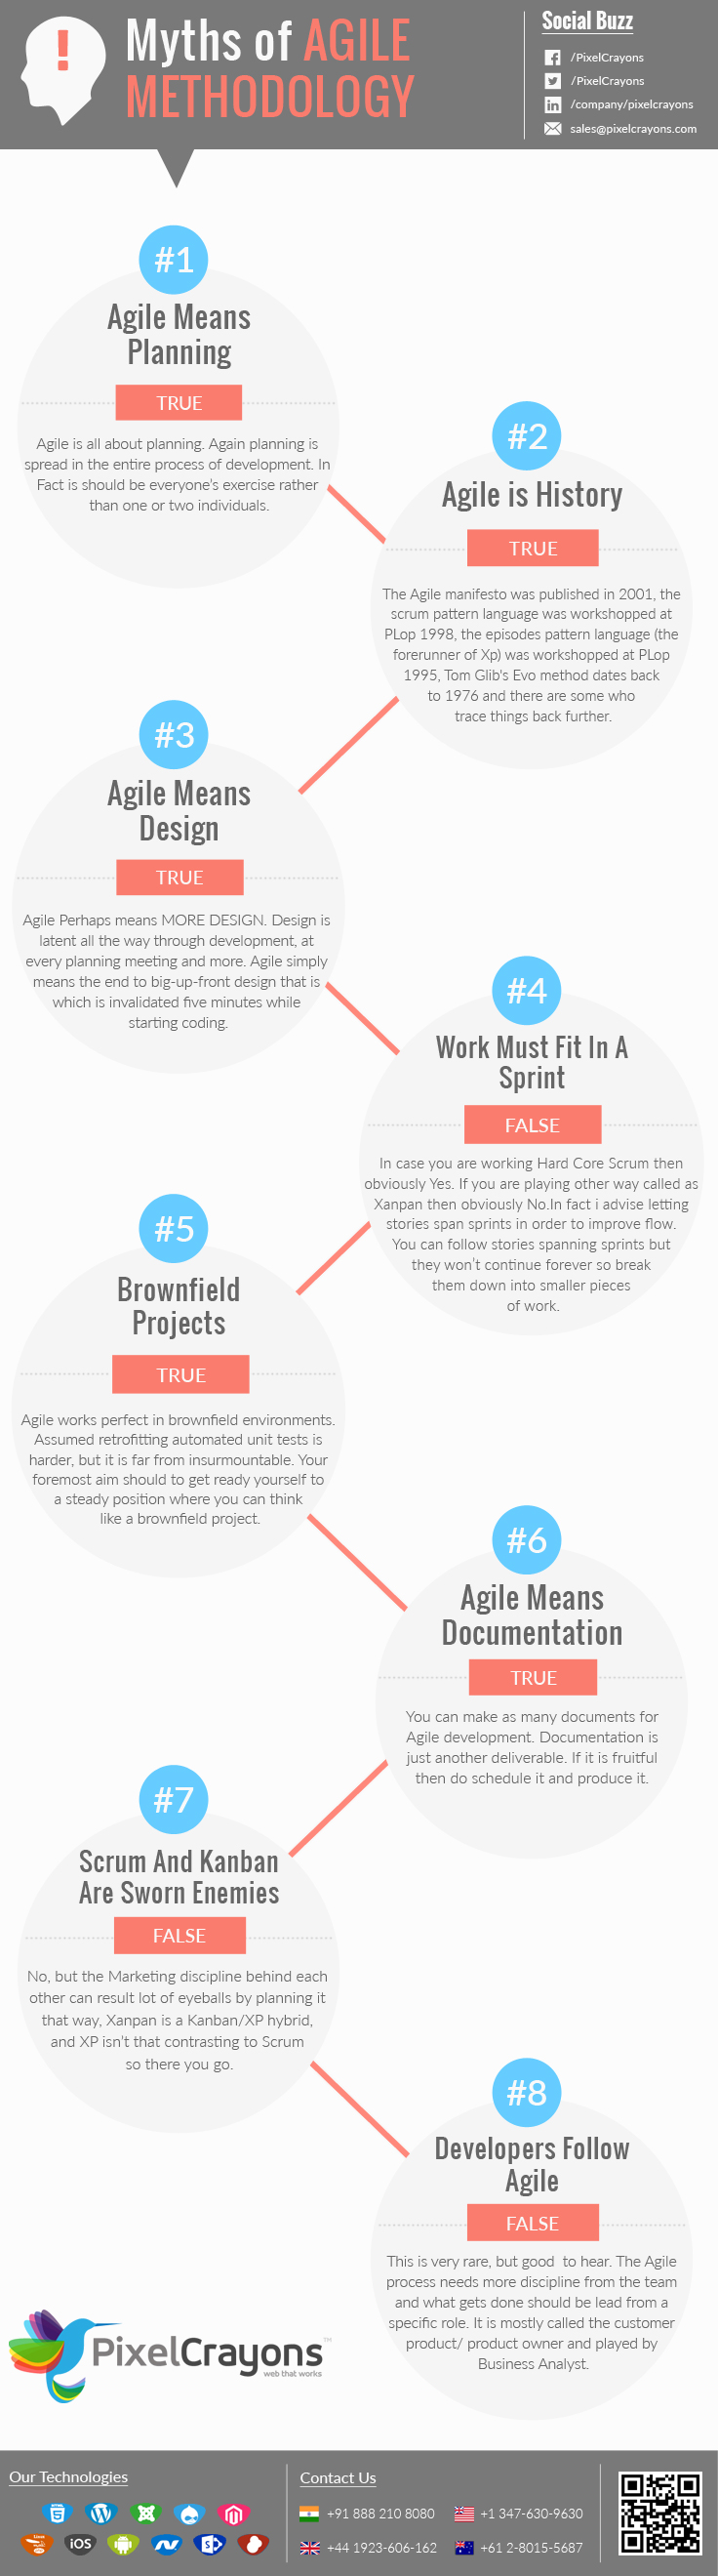 Wrong Impressions Of Agile methodology